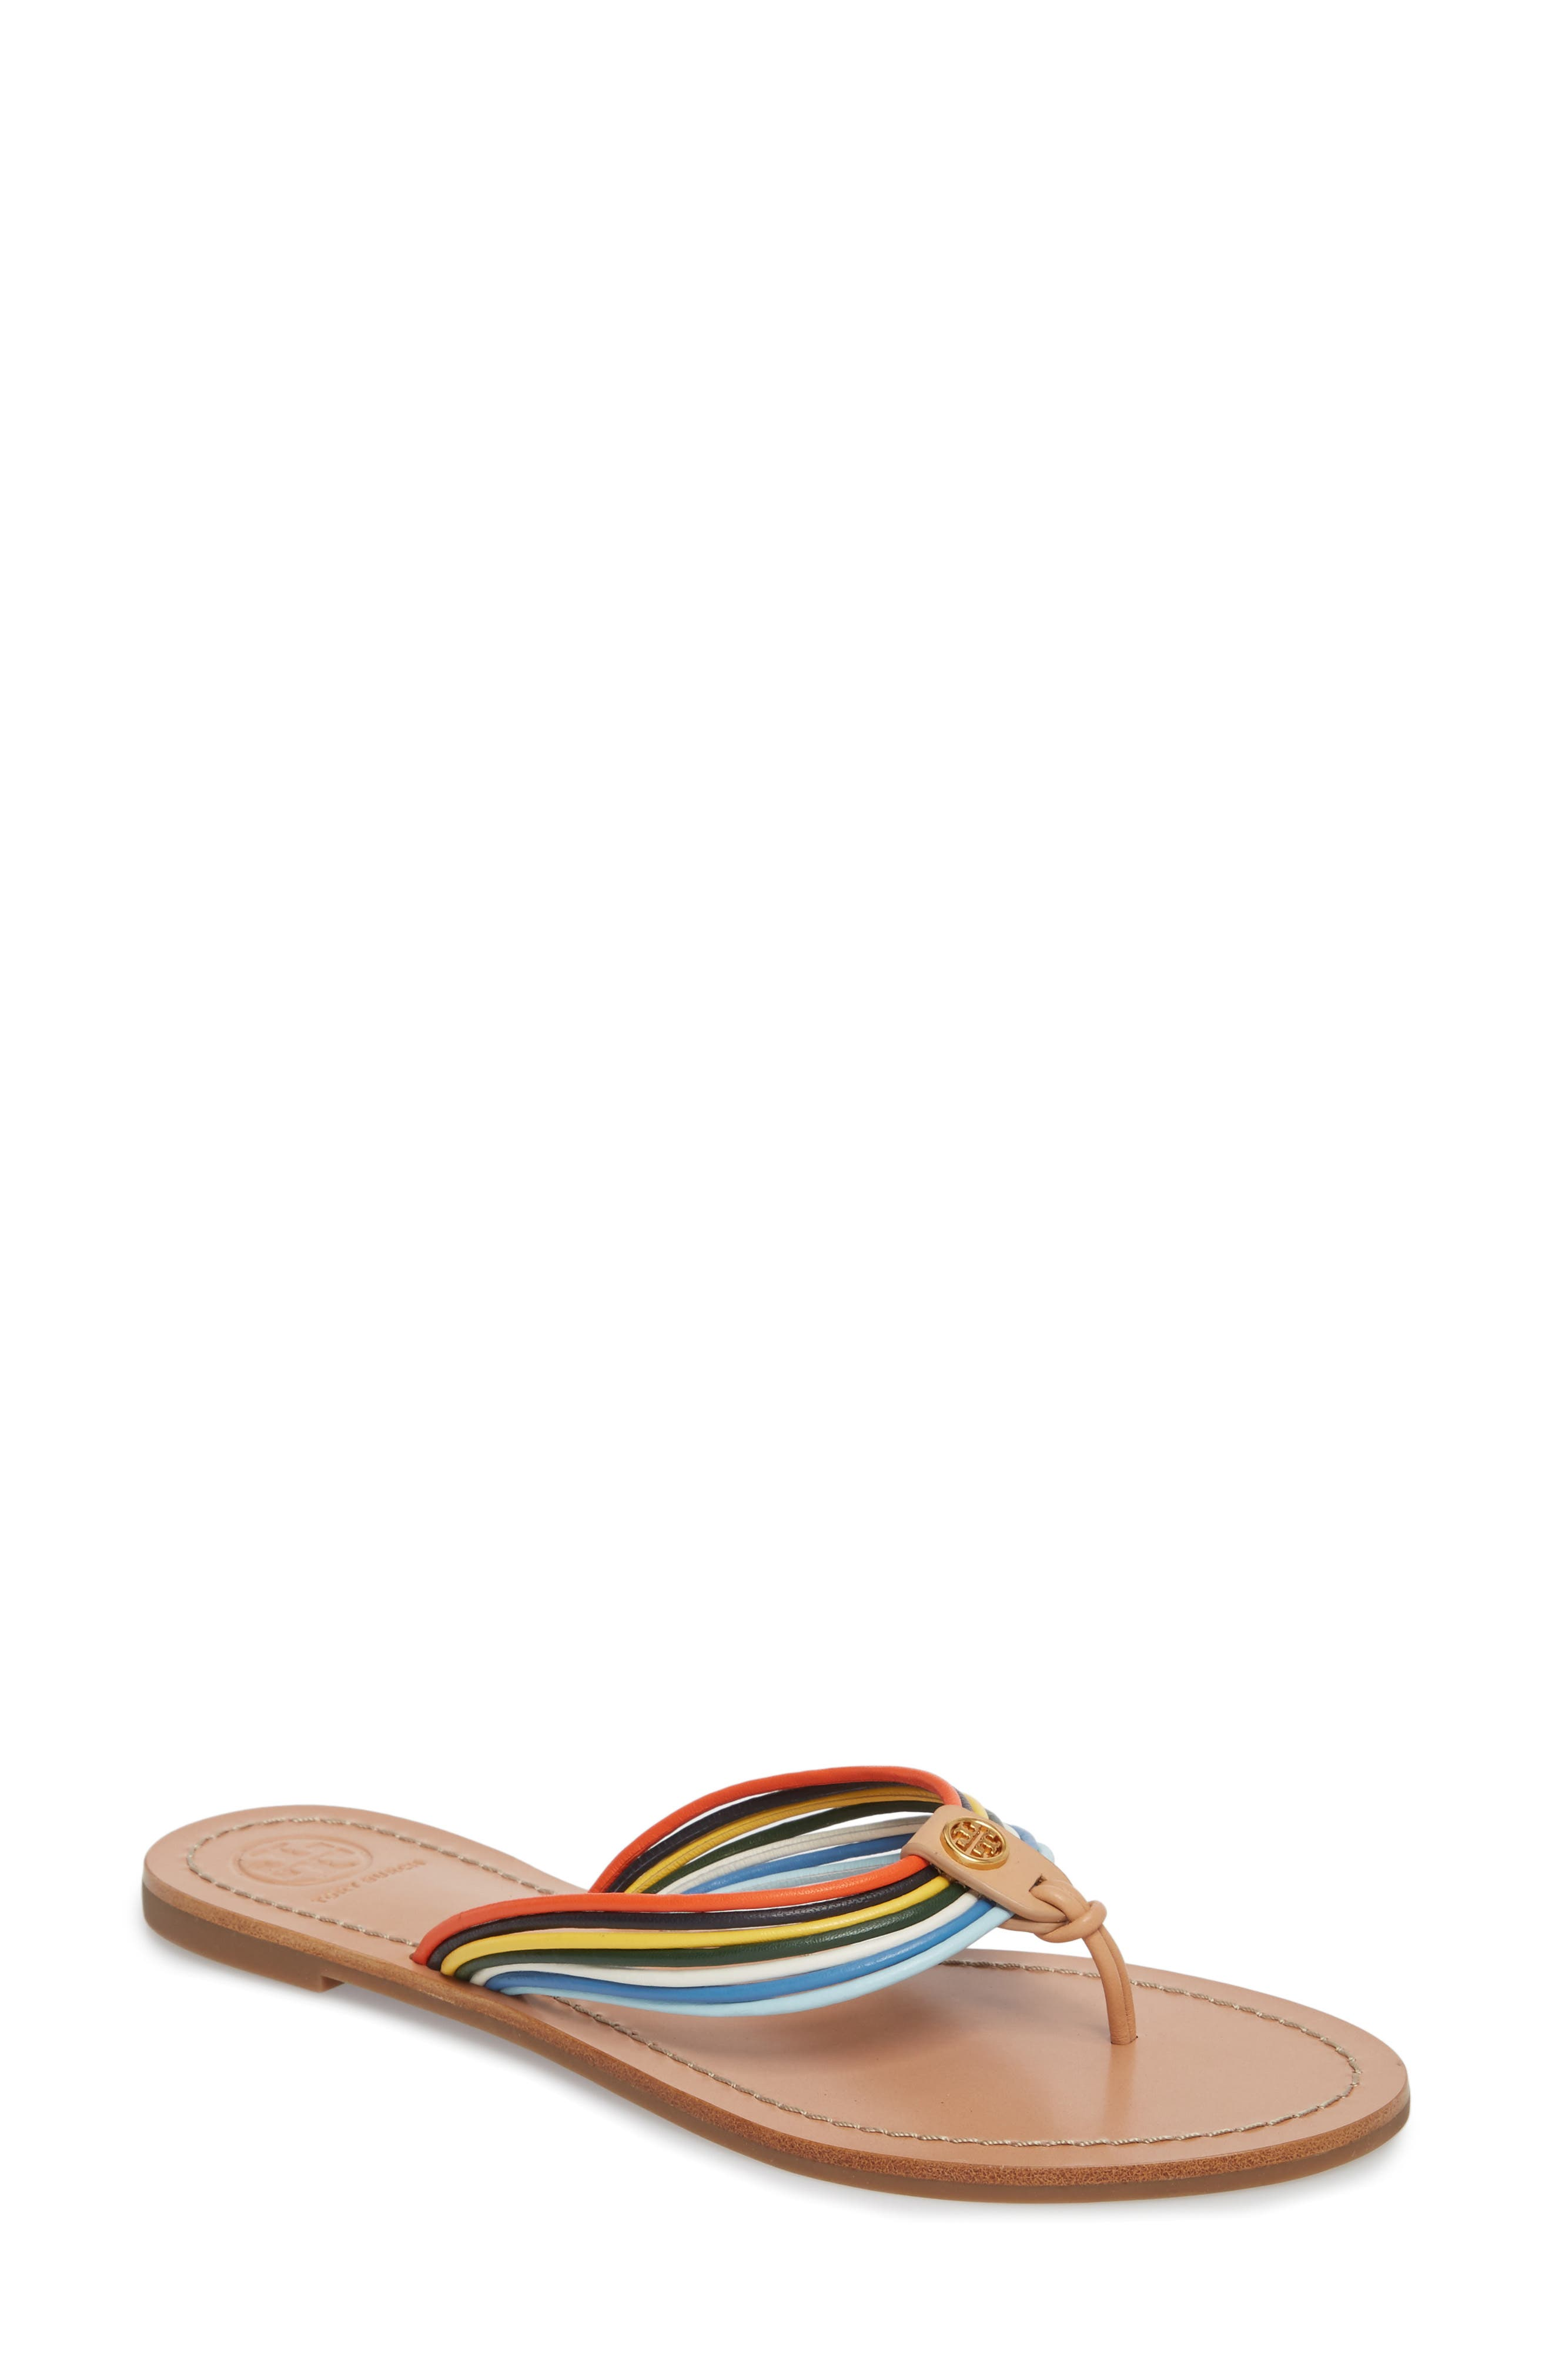 Tory Burch Sienna Strappy Thong Sandal (Women)